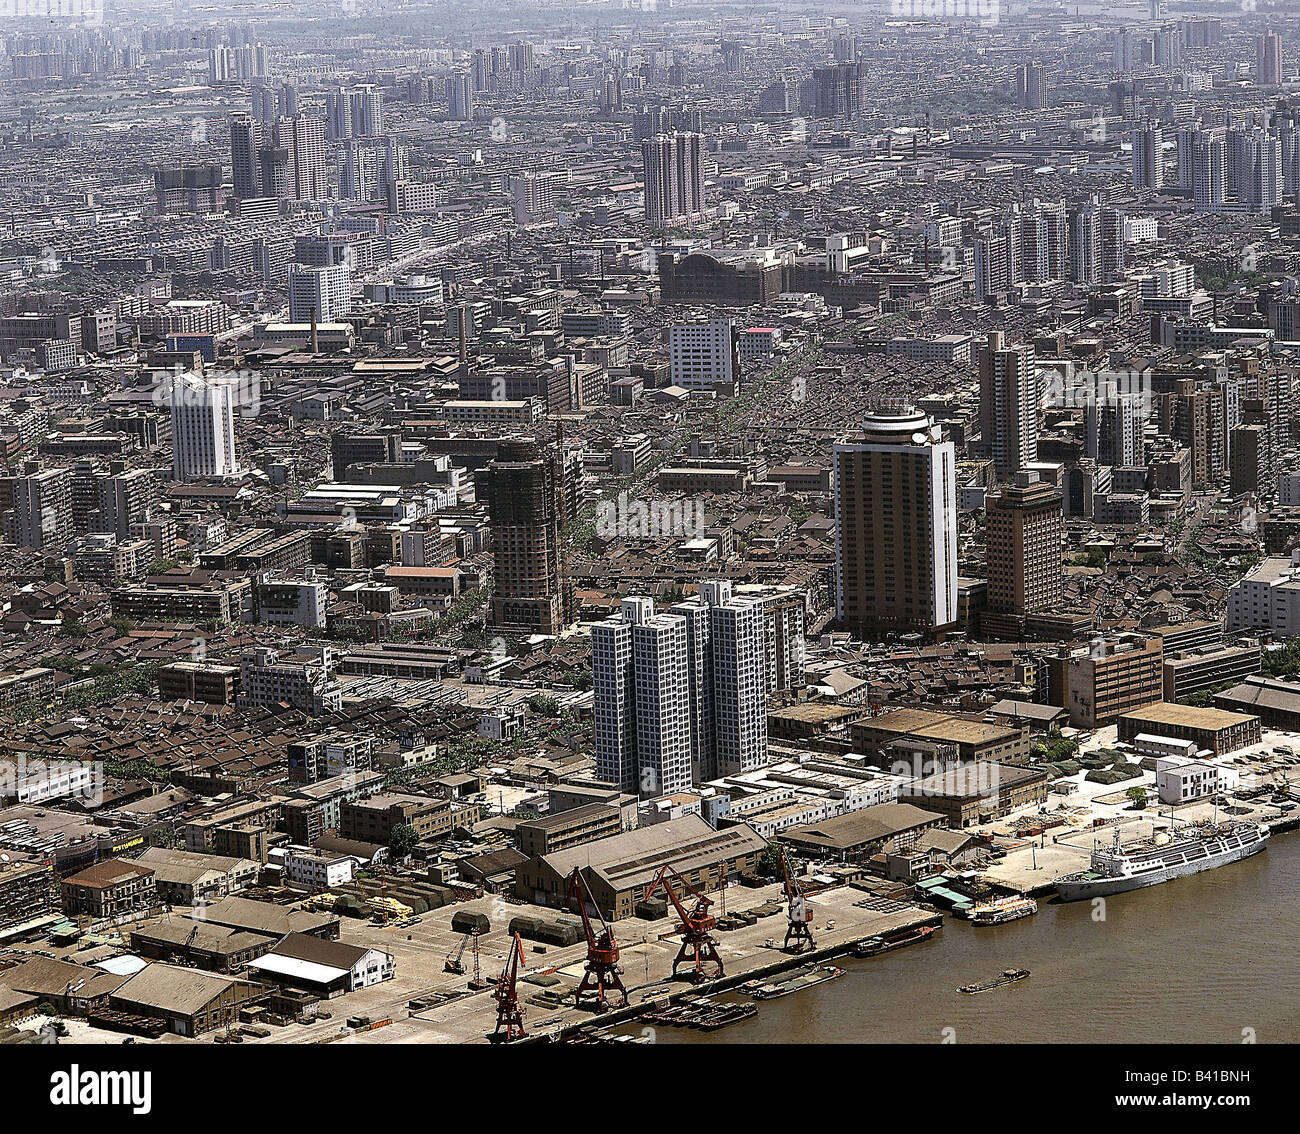 geography / travel, China, Shanghai, Huangpu river and town, metropolis, city, skyscraper, industry, port, Additional - Stock Image